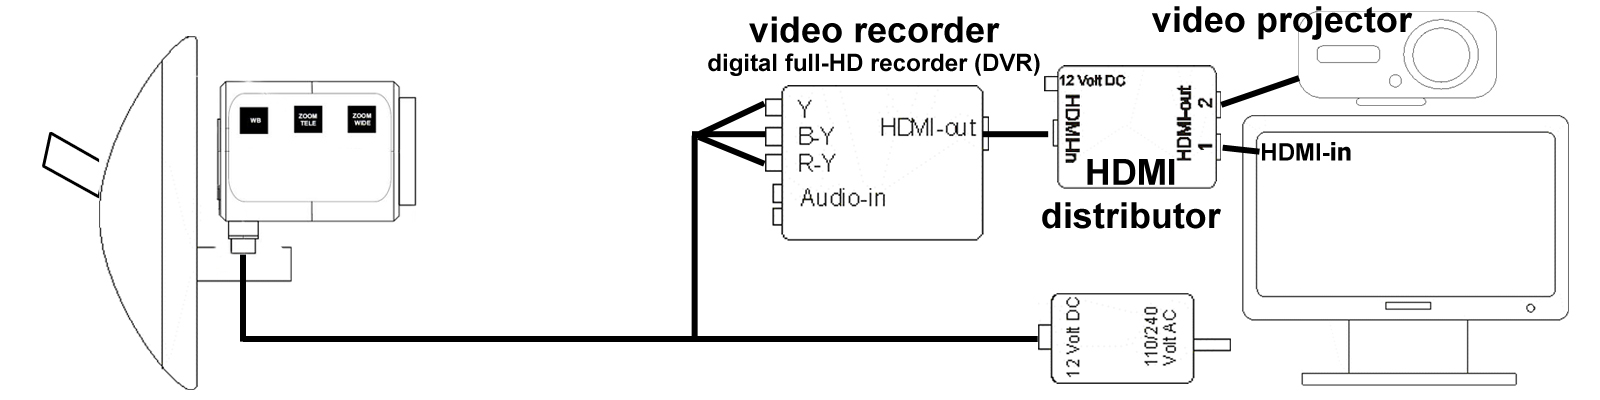 diagram thirdeye hd with video projector